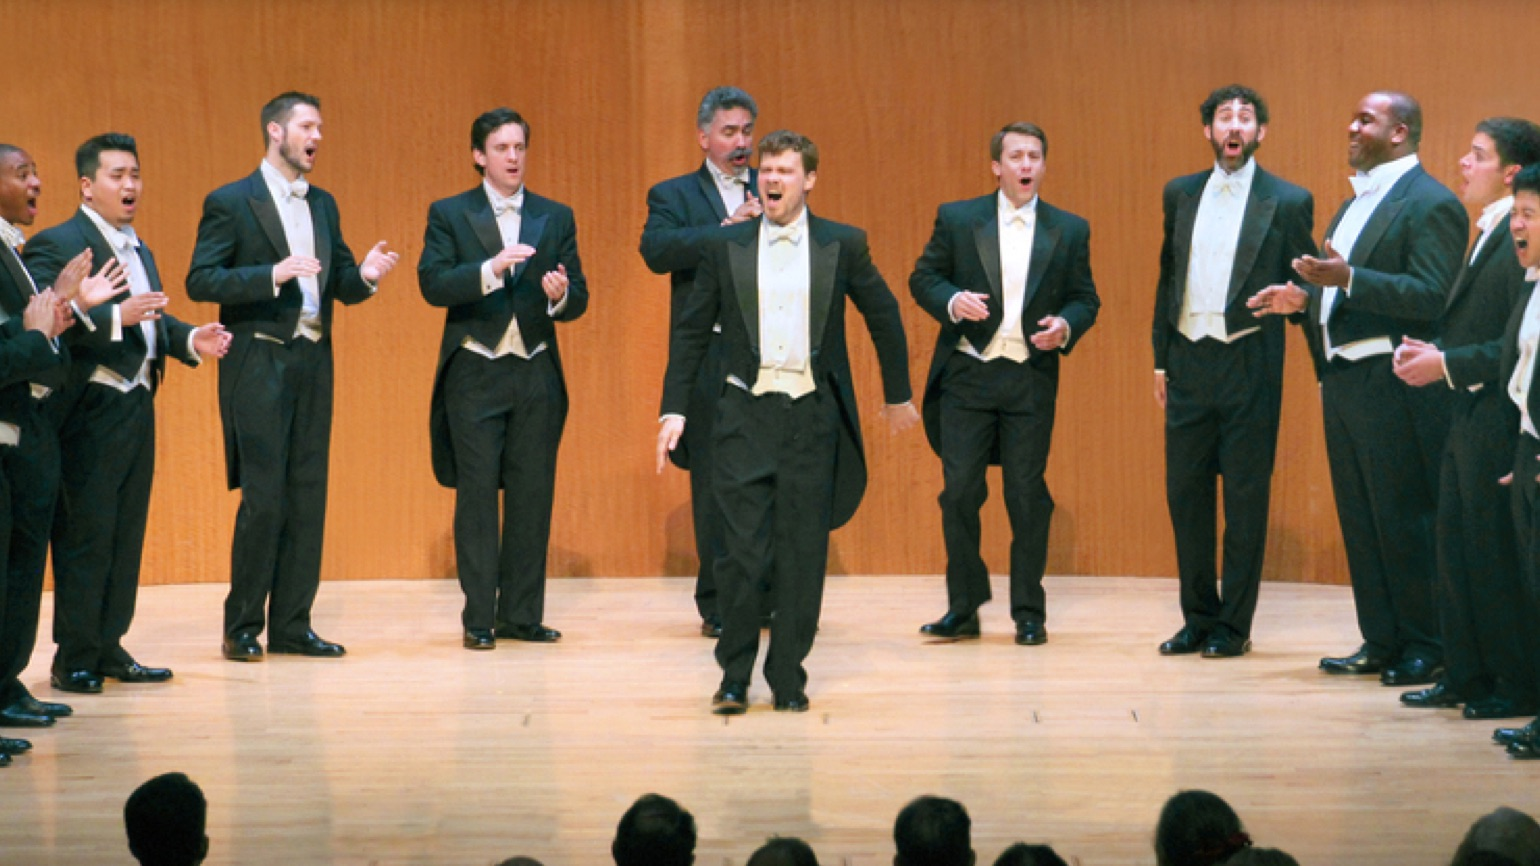 Chanticleer orchestra of voices